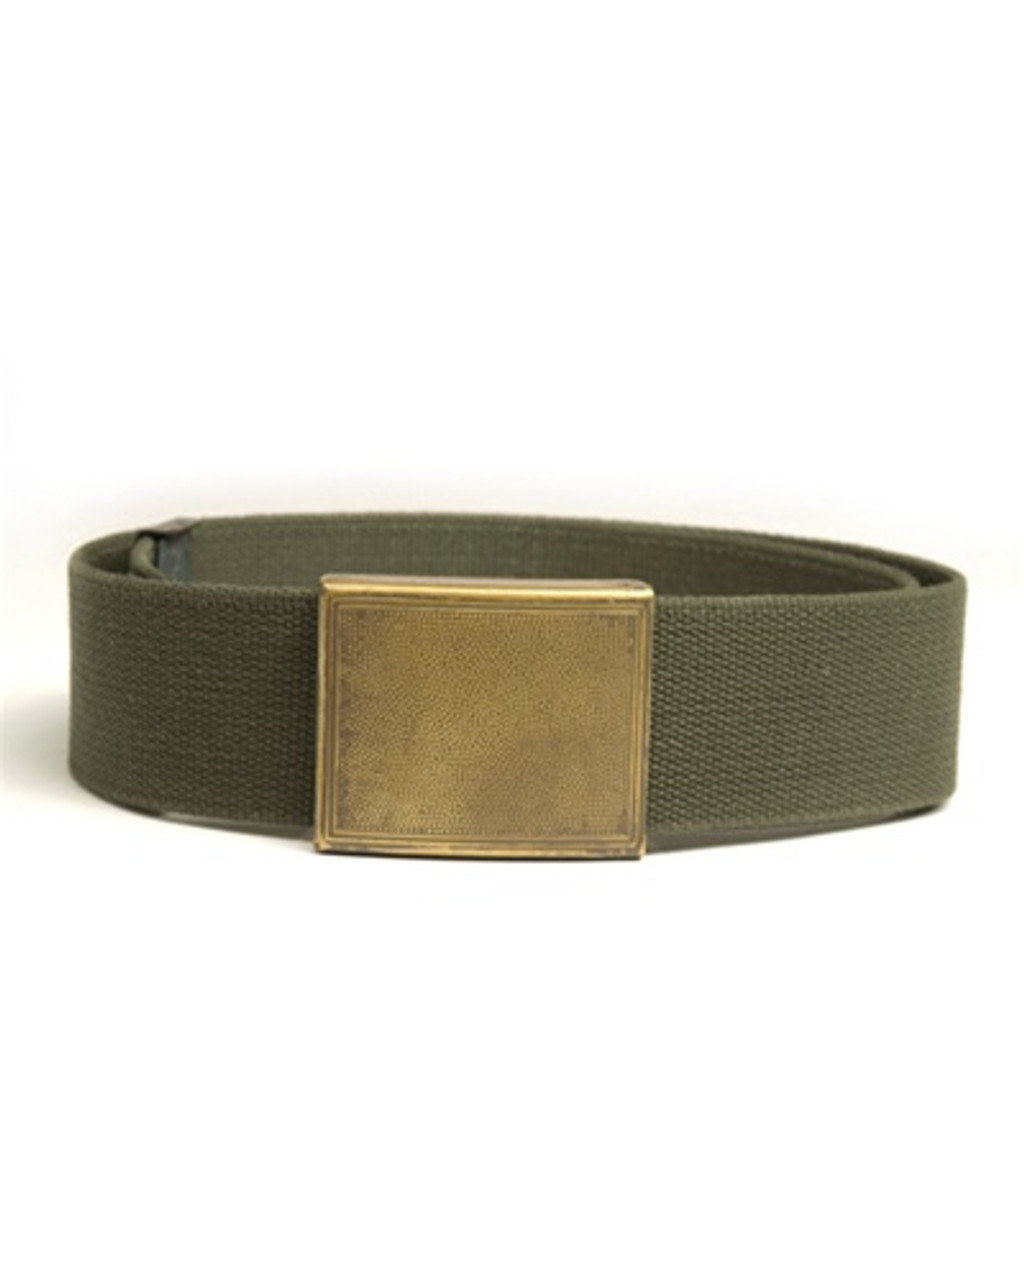 Bundeswehr Combat Belt from Hessen Antique